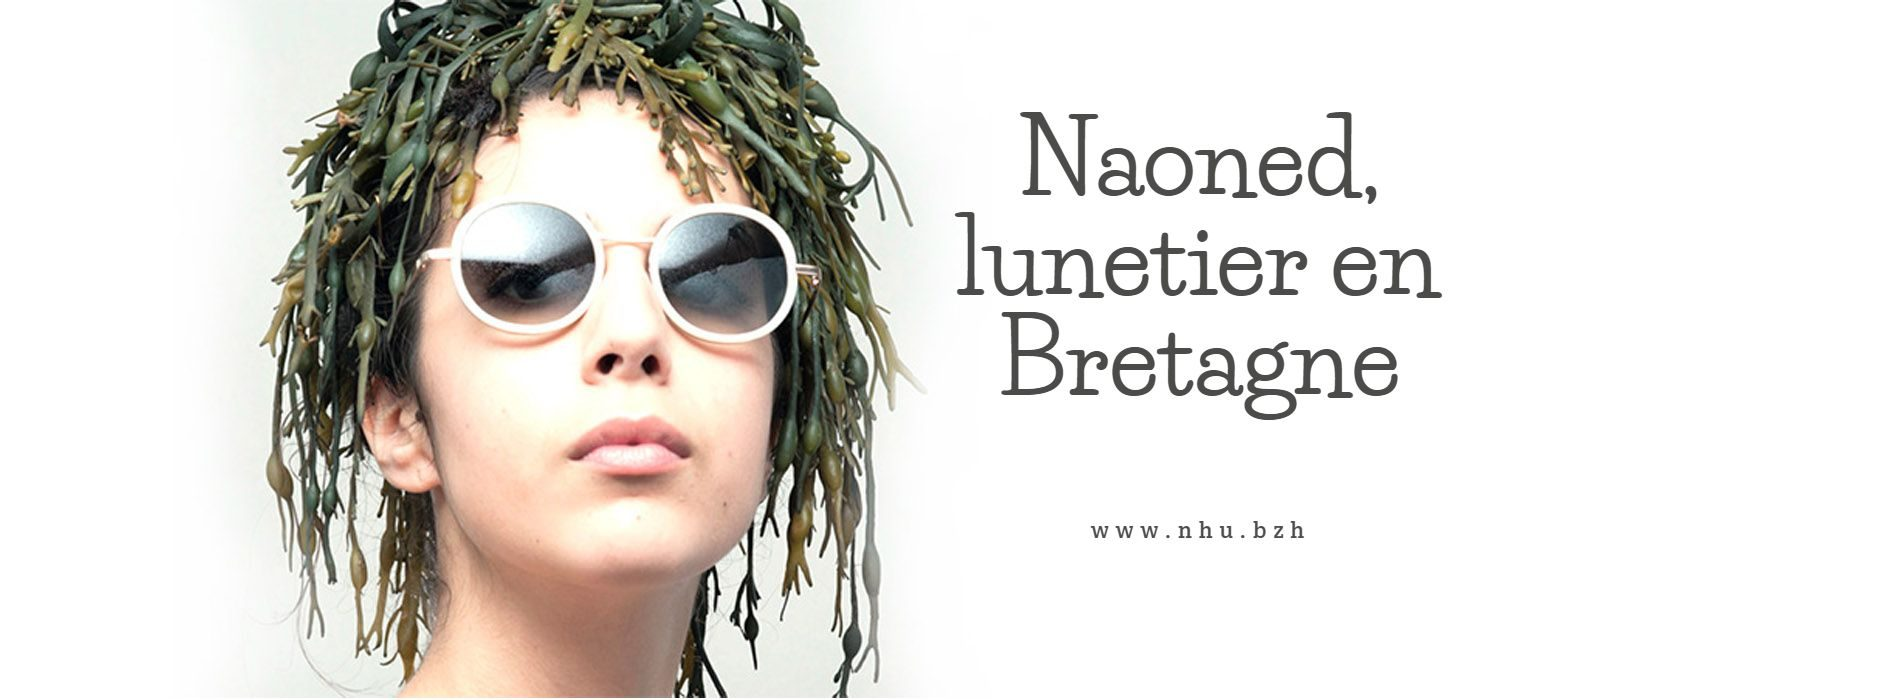 Des lunettes bretonnes made in Naoned